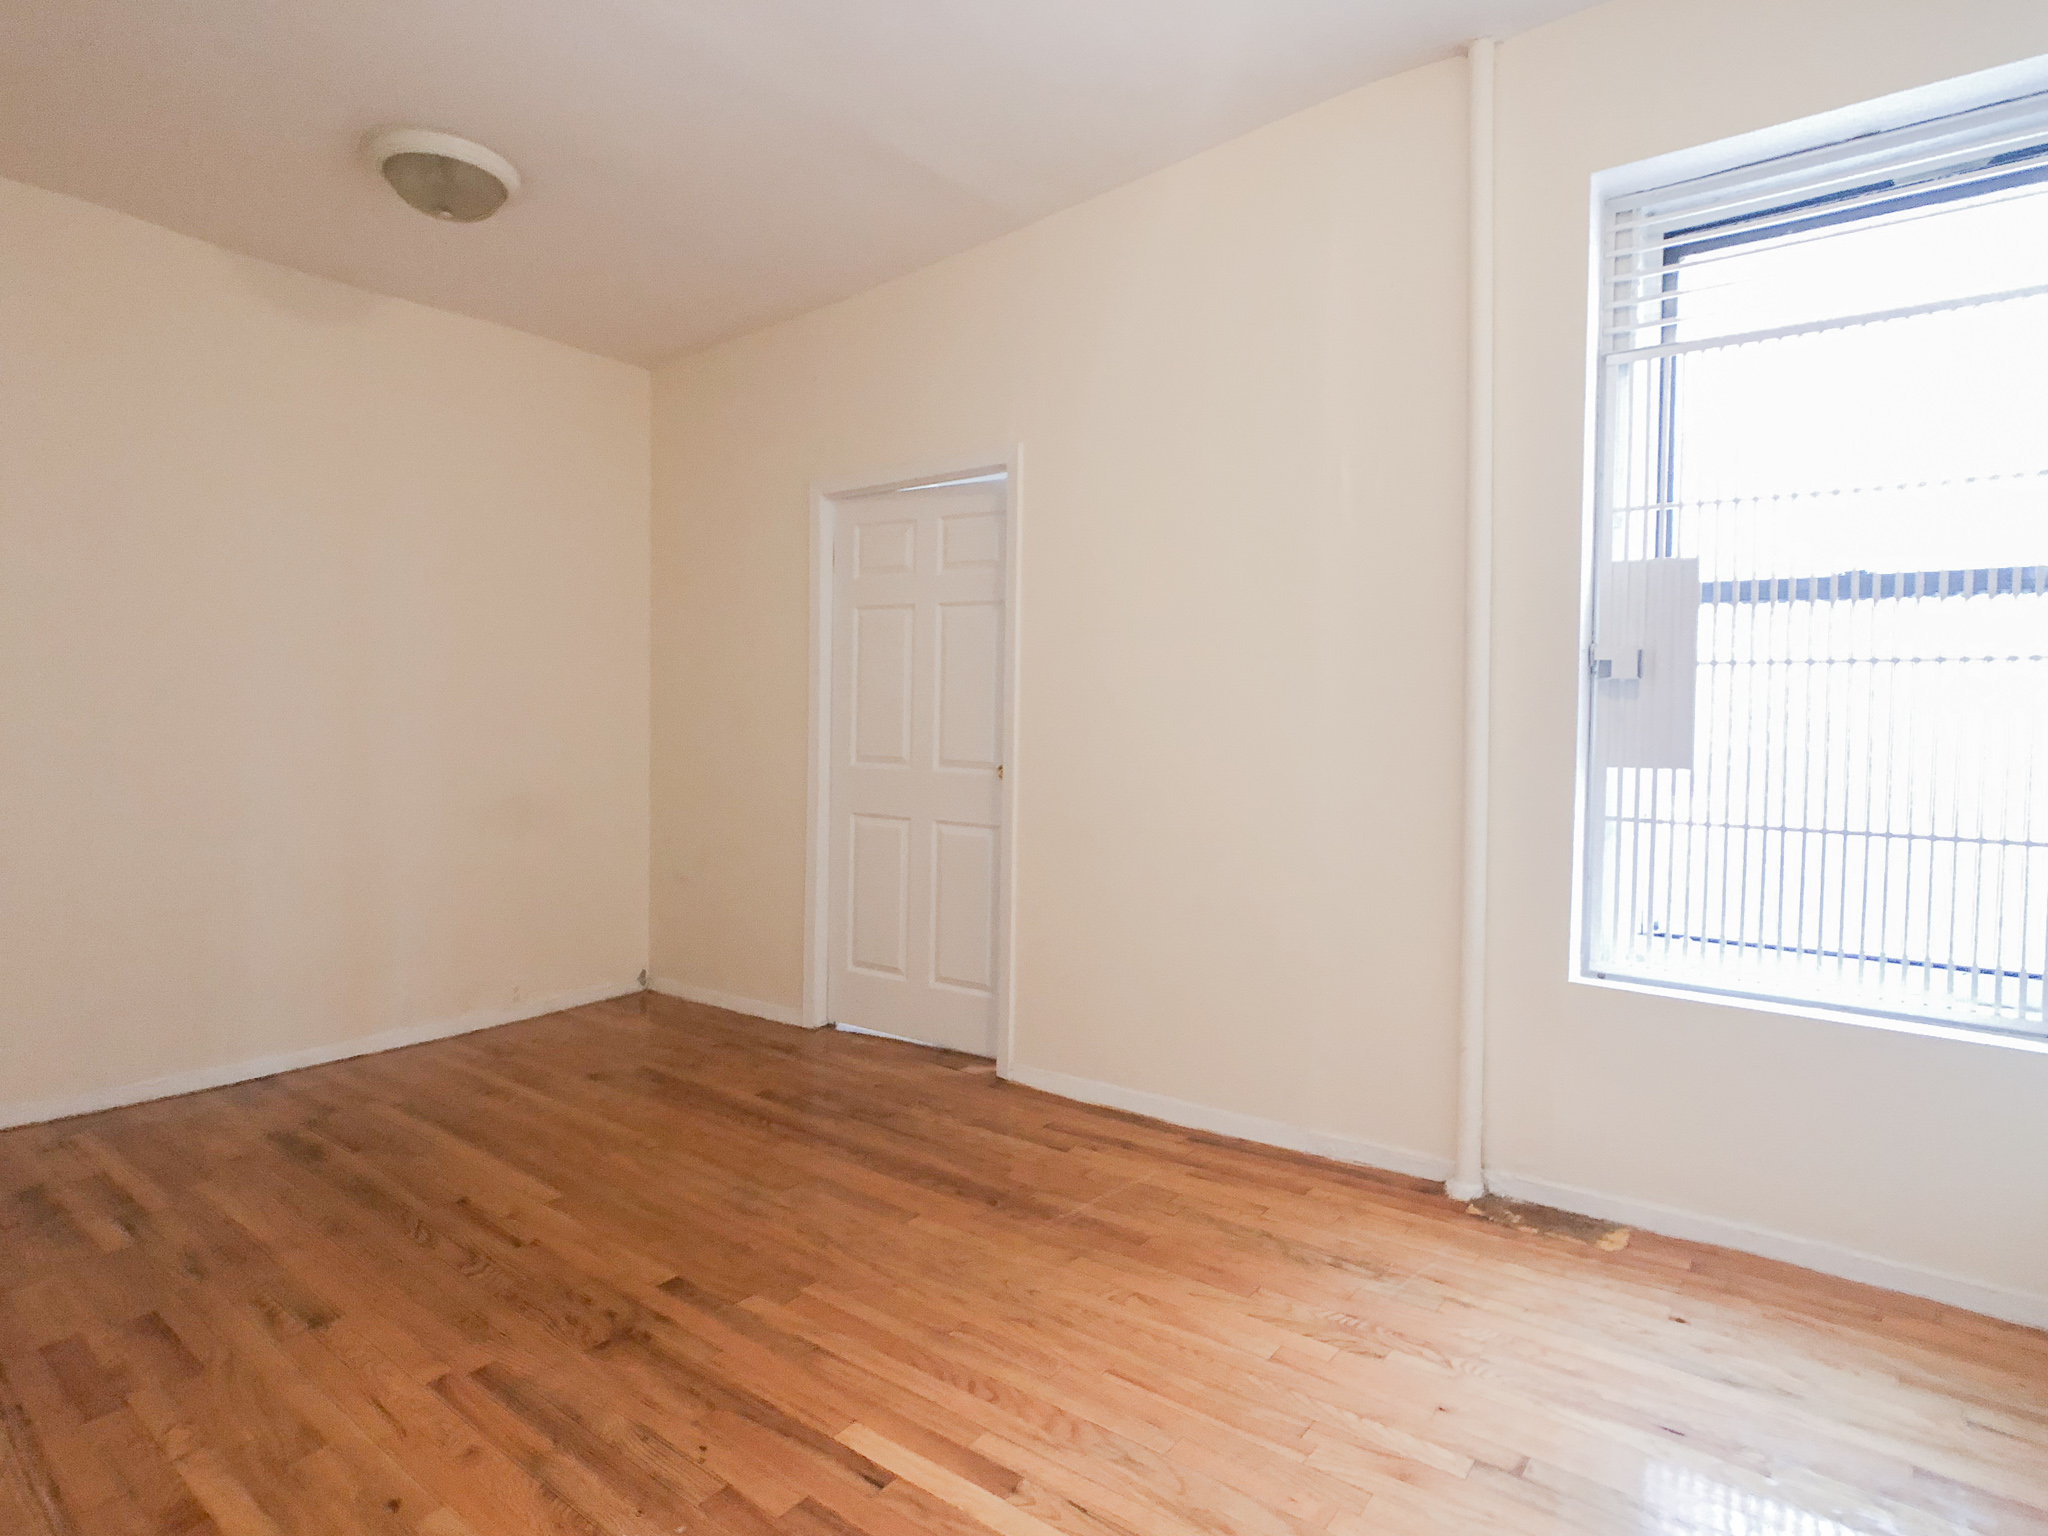 700 E 9 Street #5 - Charming One bedroom in East Village. The unit features large living space, Queen size bedroom, hardwood floors, exposed brick and windowed kitchen with stainless steel appliances. Located just one flight up the stairs in a pet friendly building with live-in super. Rent: $2,495 /monthTerms: 12 - 12 MonthsAvailable: Immediate